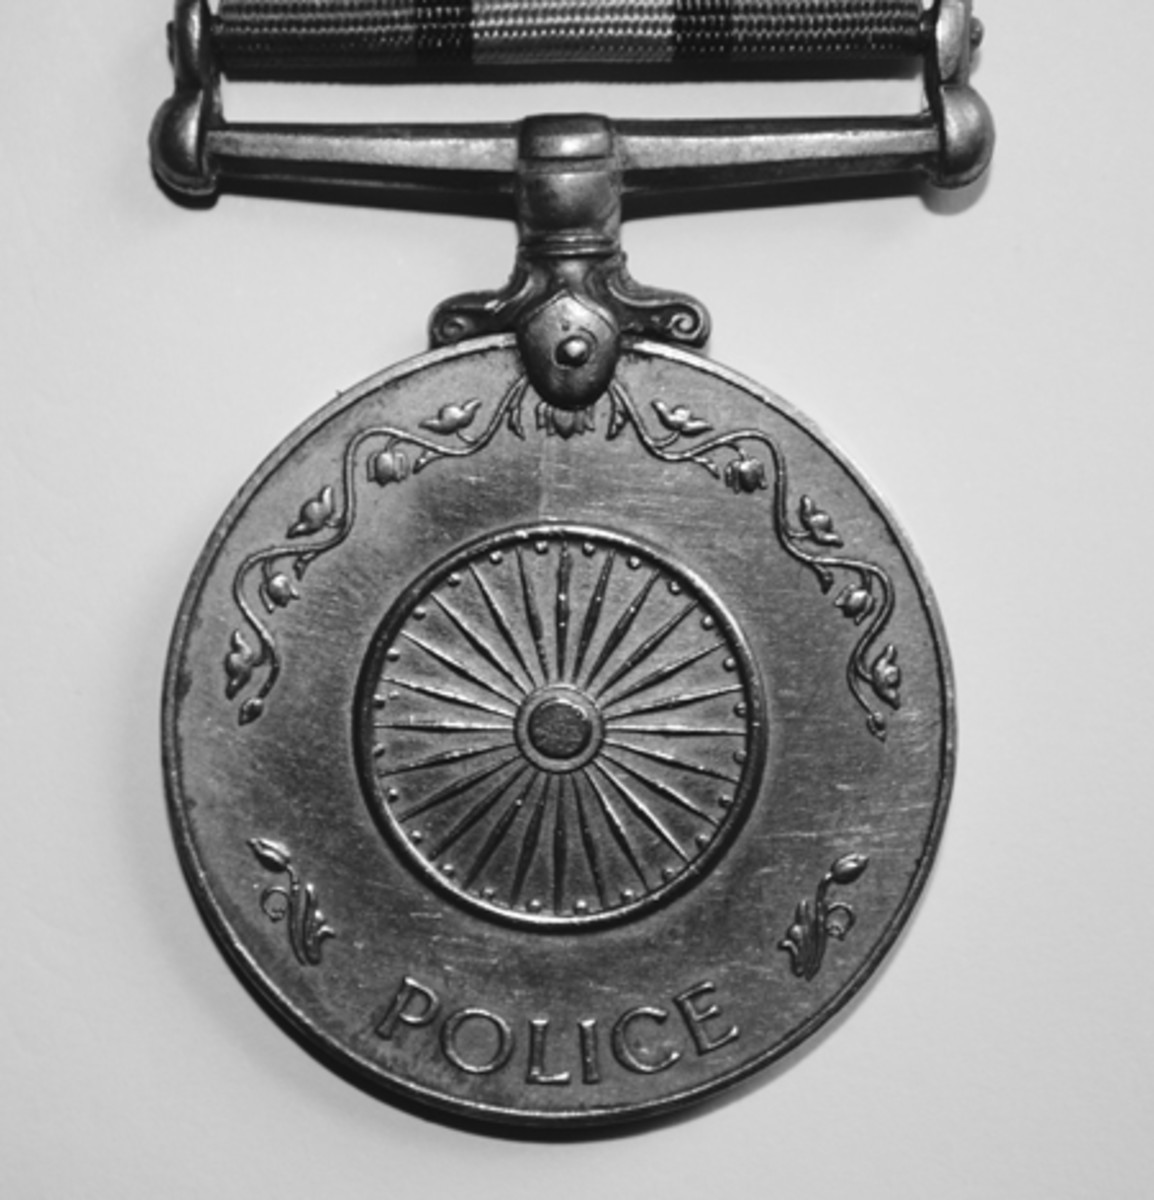 Reverse of Police Independence Medal with chakra symbol.